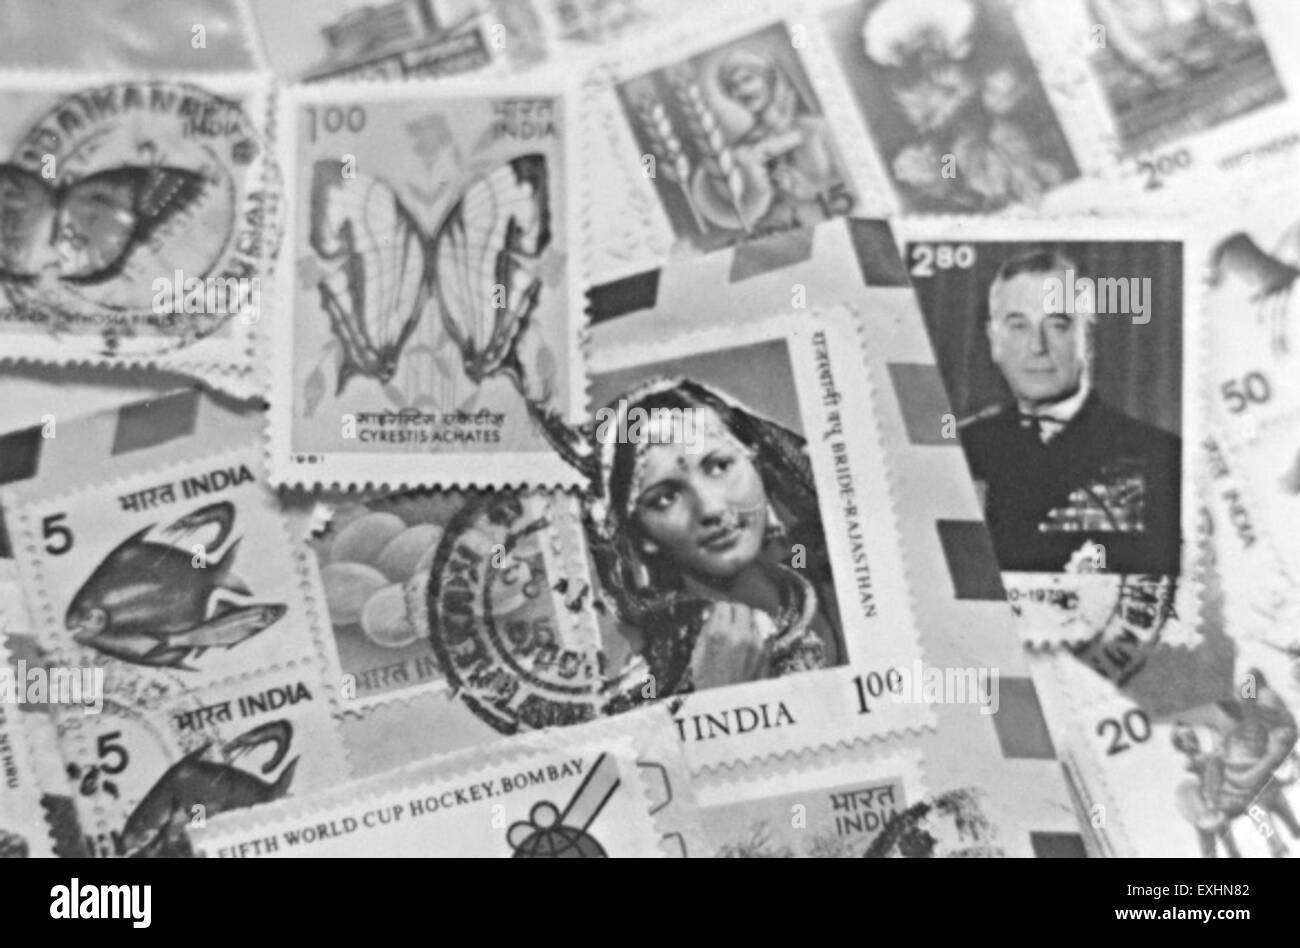 Postage stamps, India, 1982 1 - Stock Image